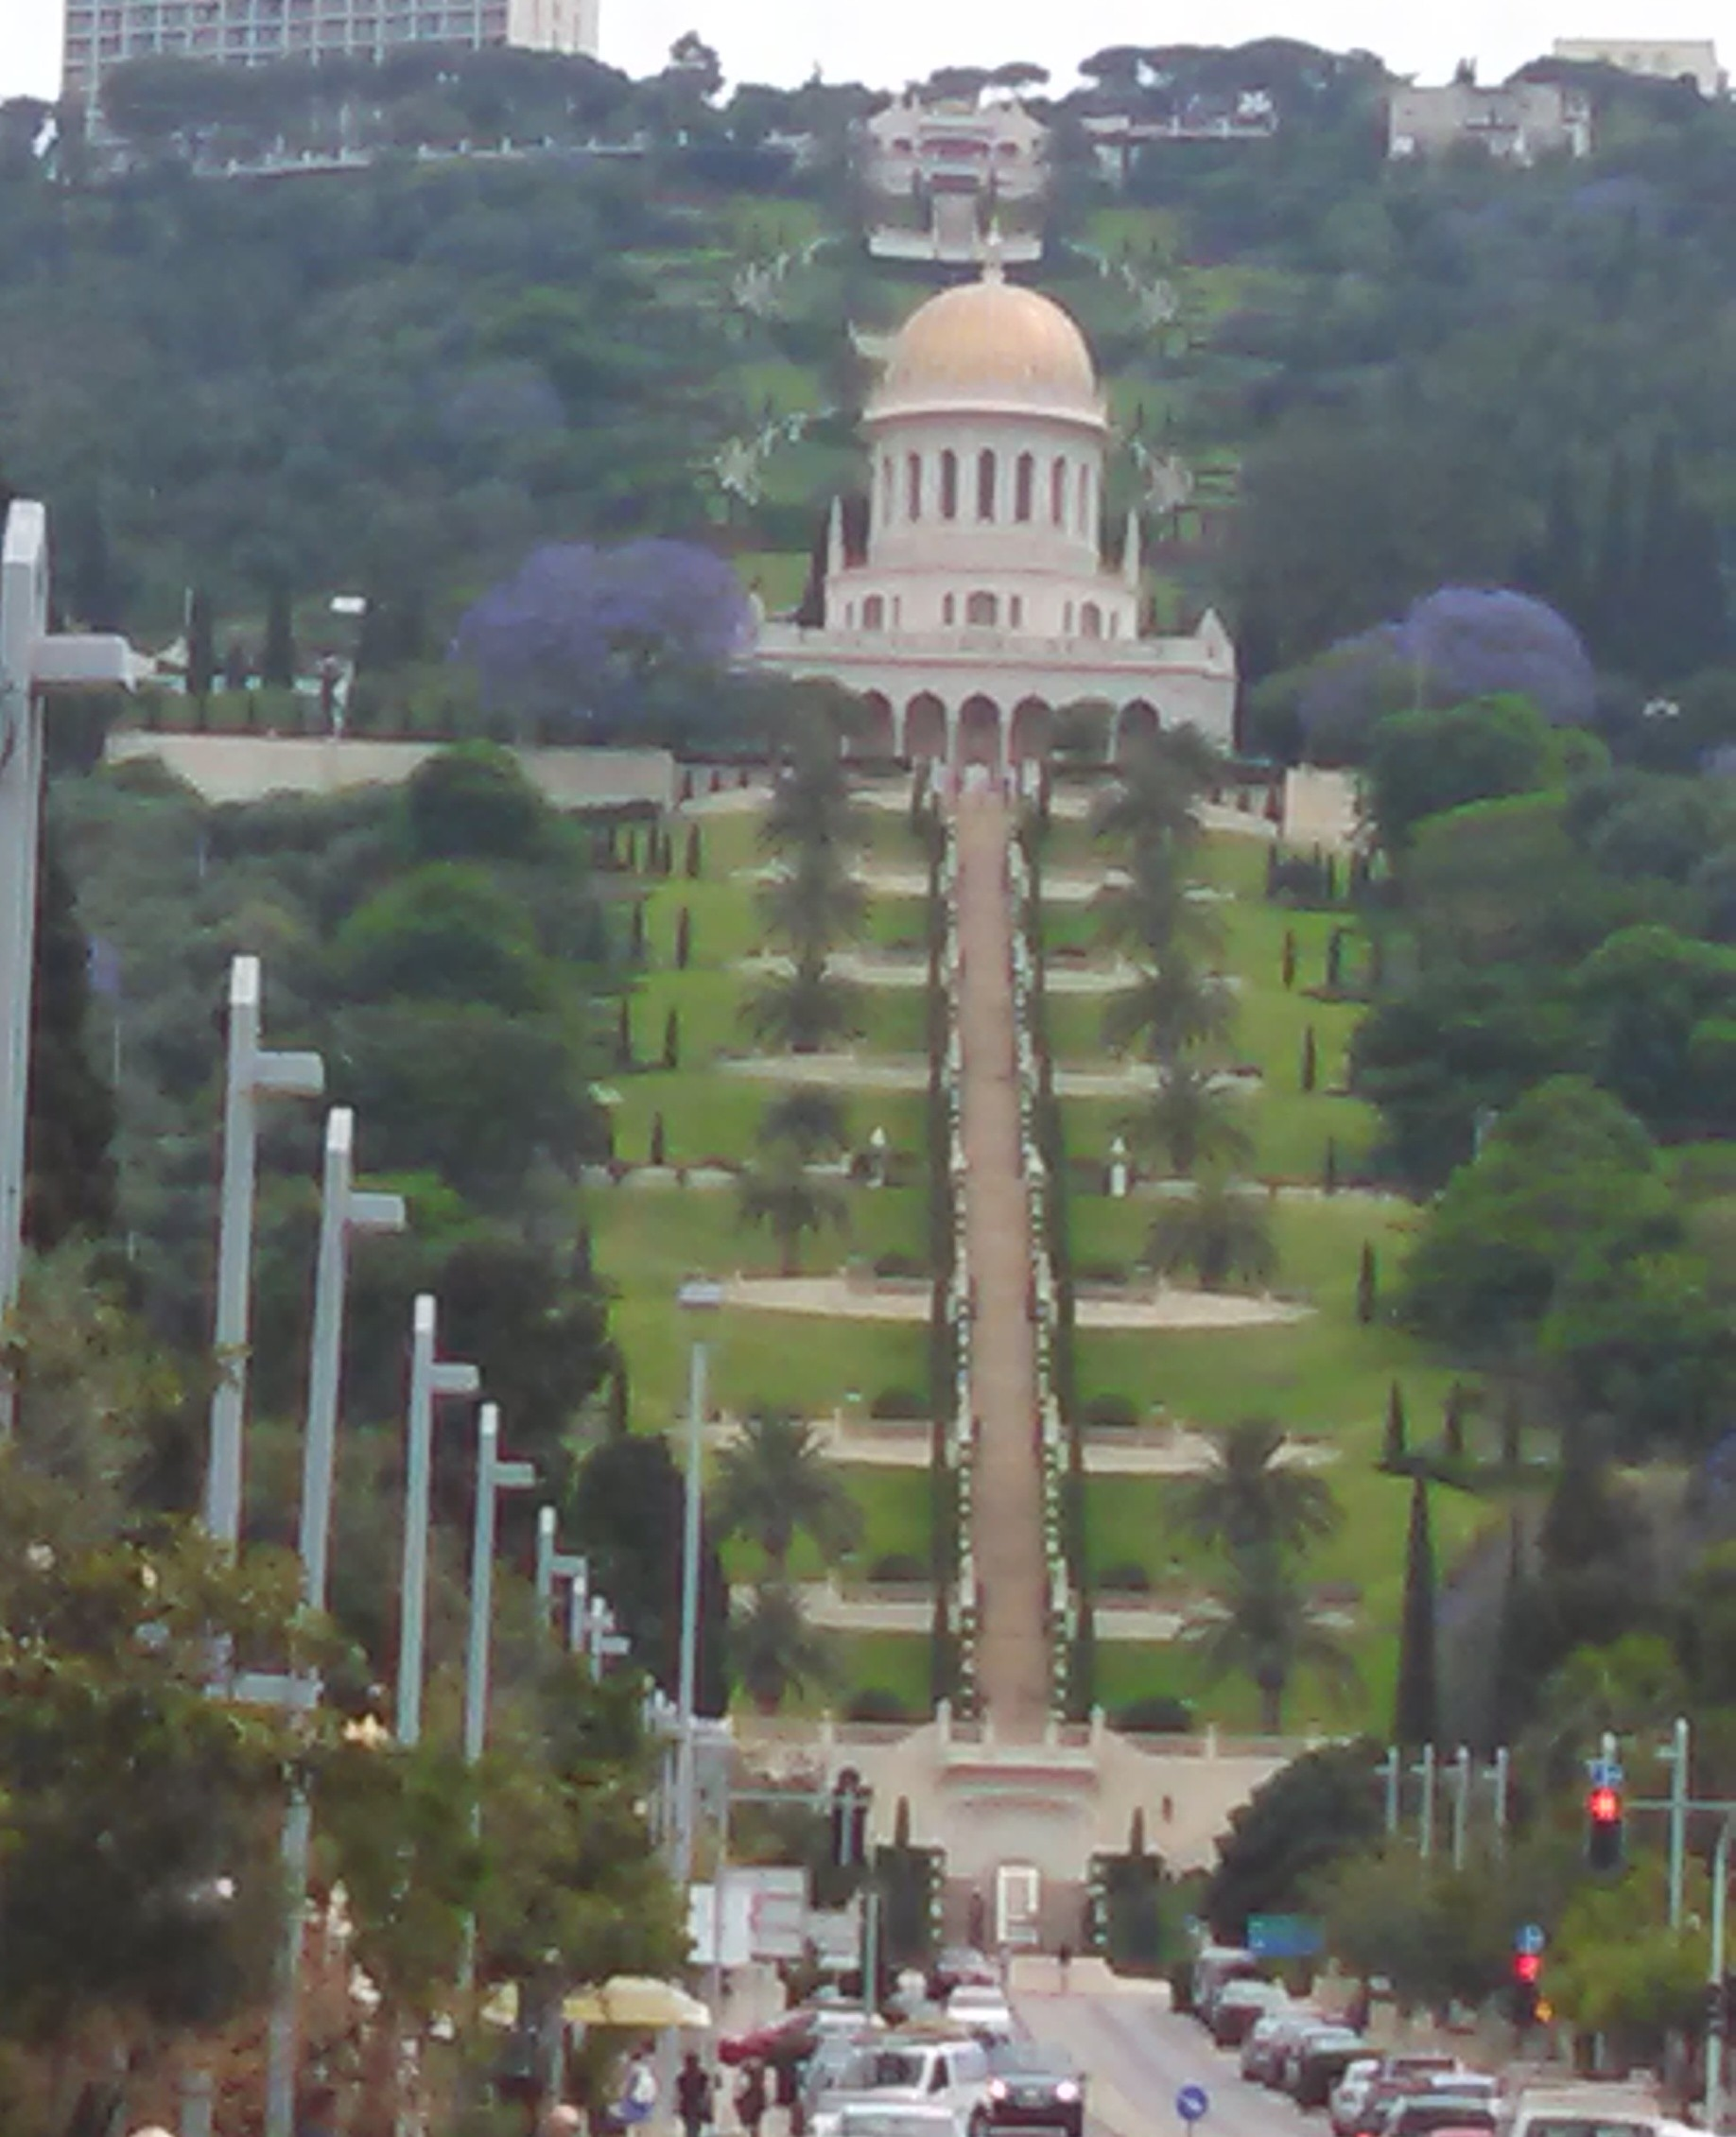 Bahai Gardens from German Colony